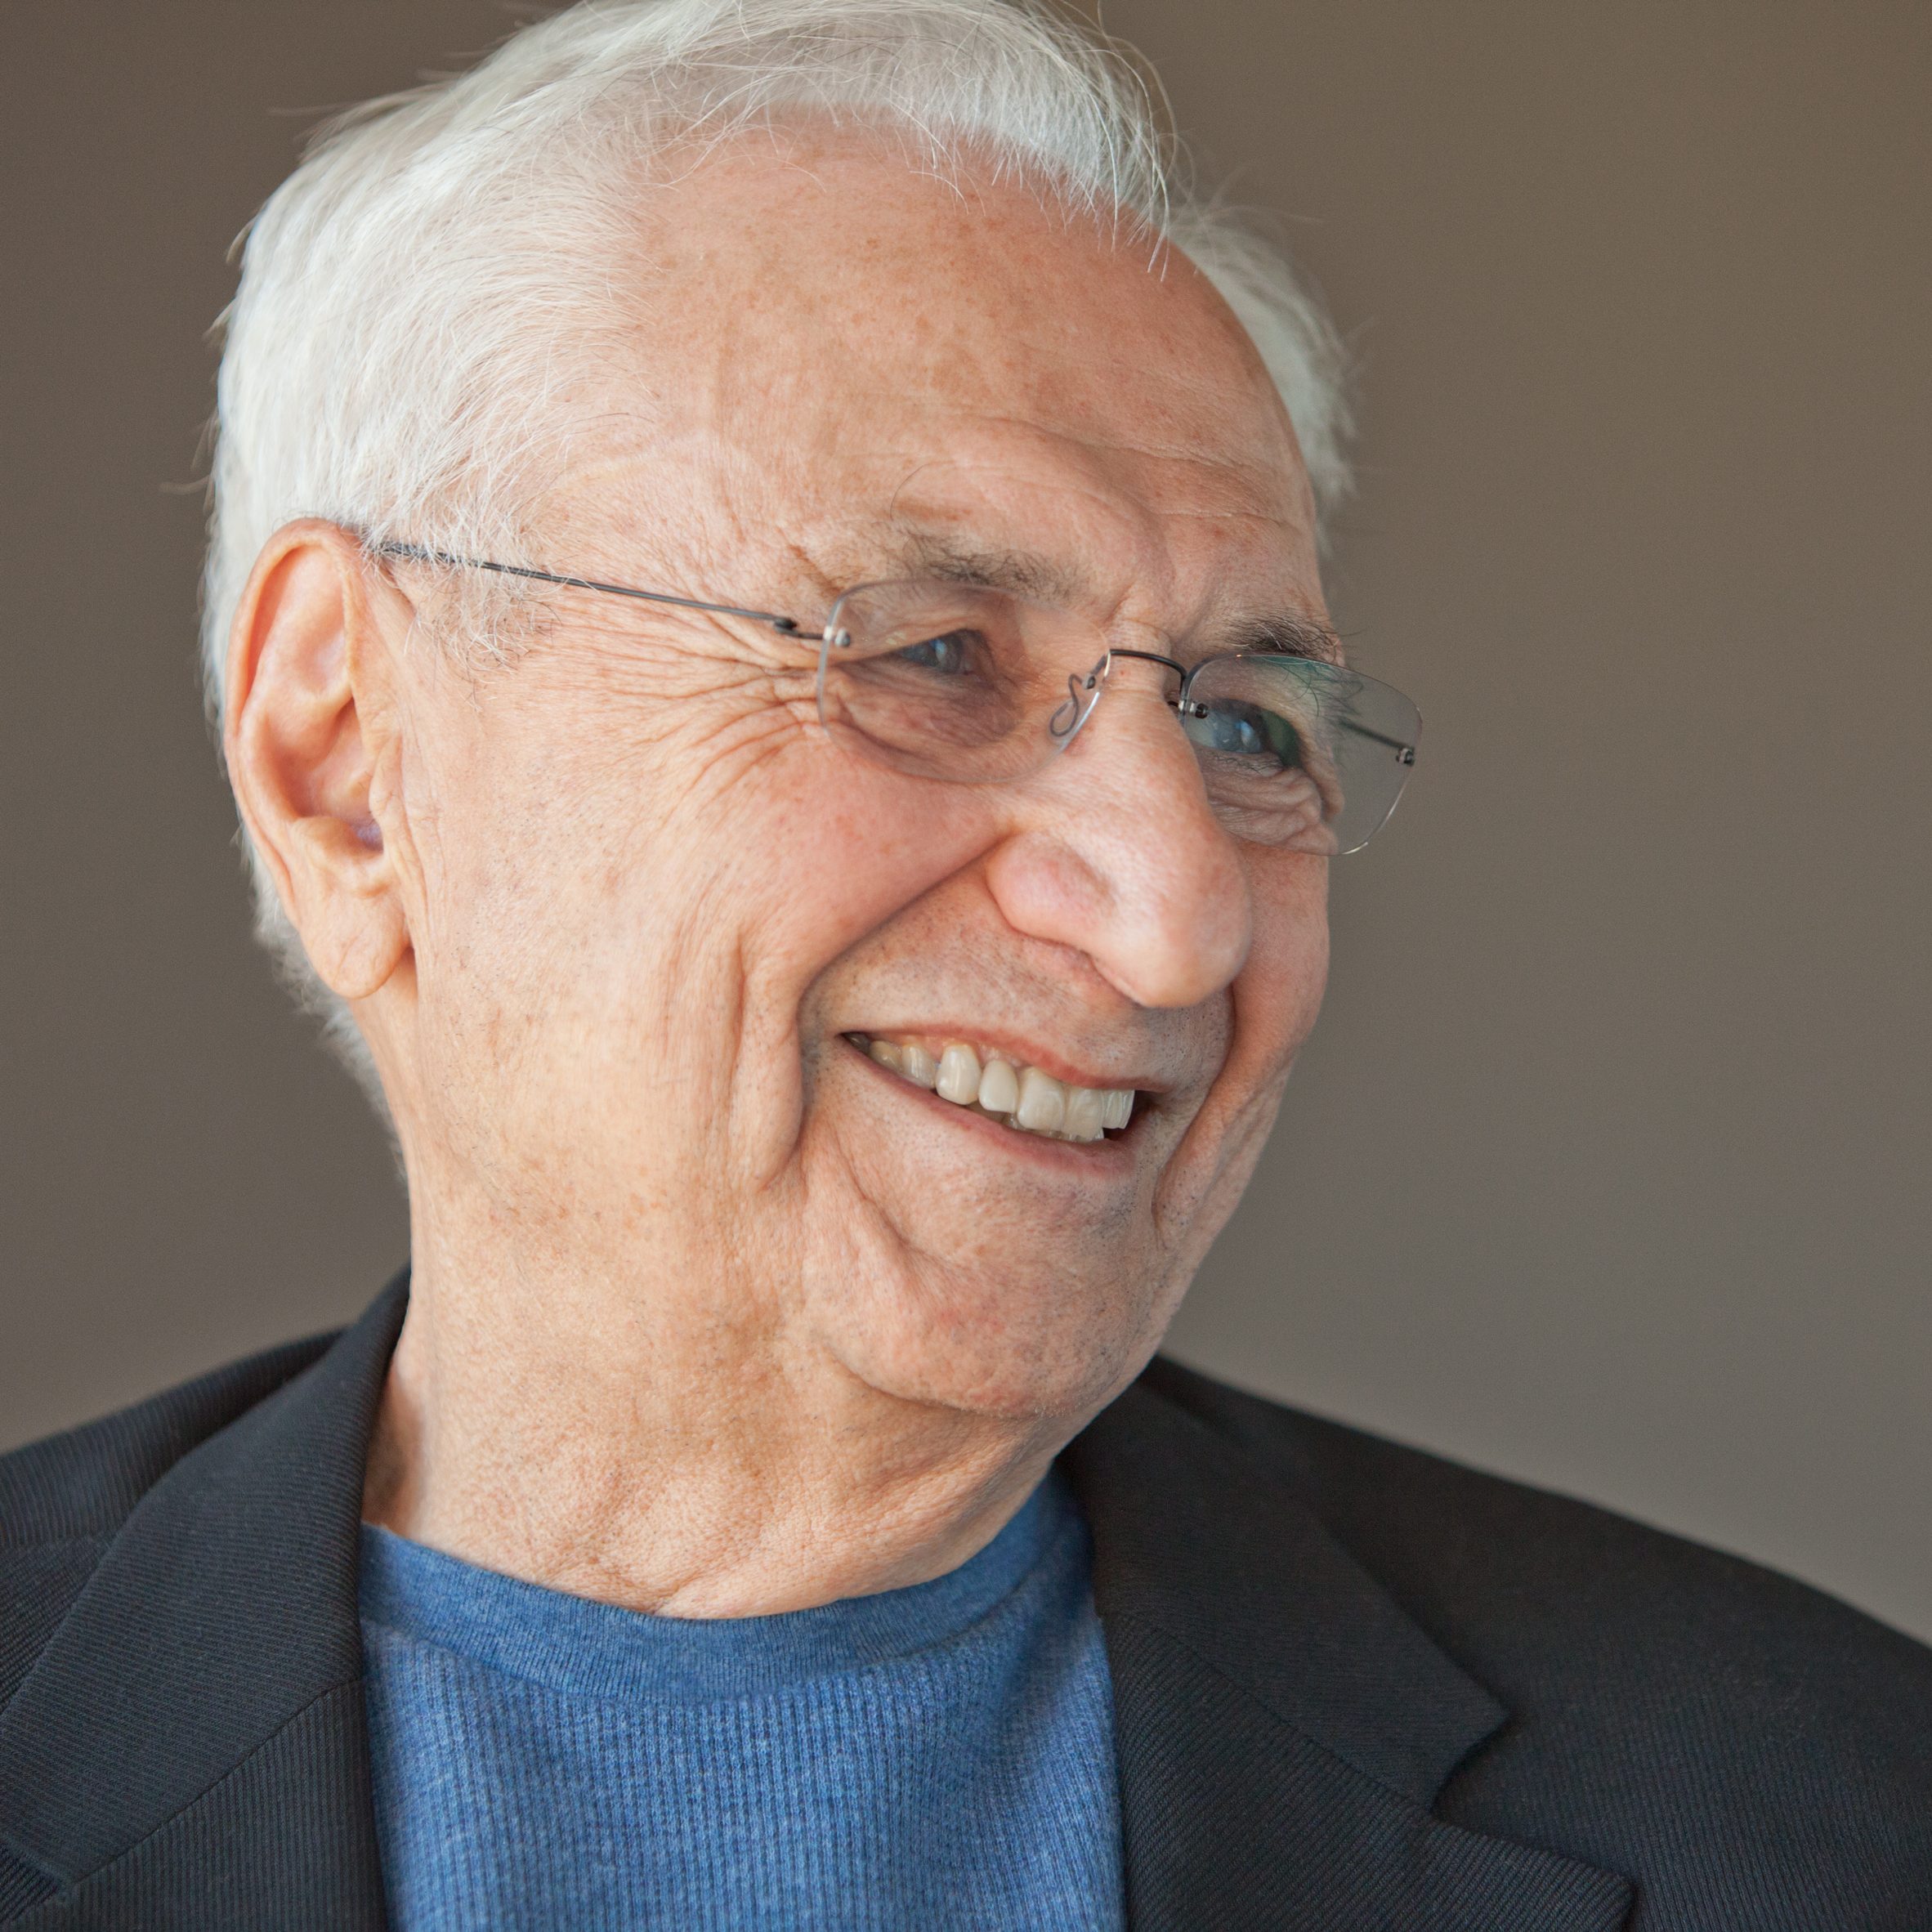 Frank Gehry Architecture Quoti Might Become Mies Van Der Rohe Quot Says Frank Gehry